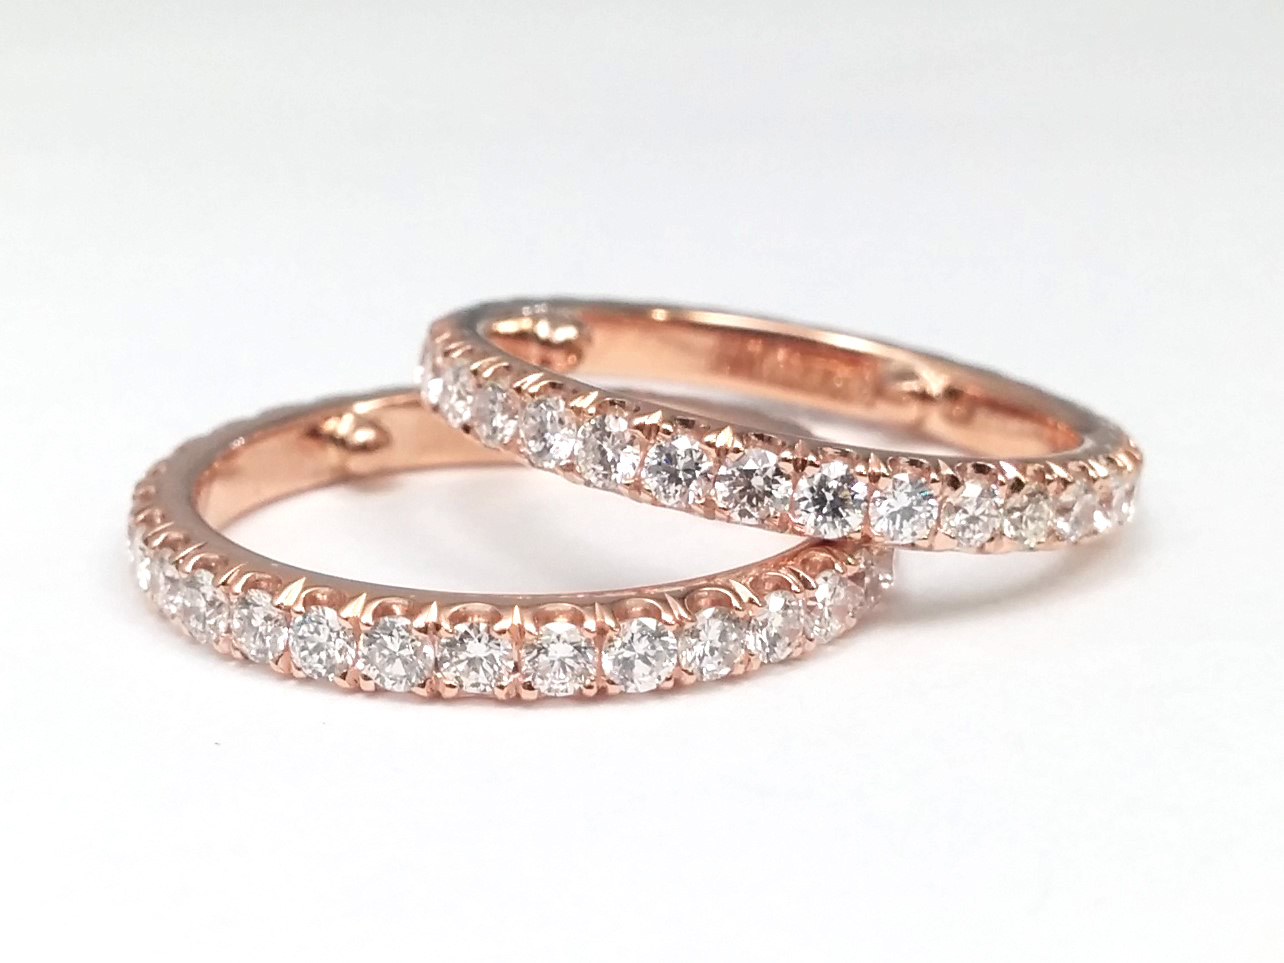 Two Eternity Matching Wedding Bands in 14K Rose Gold